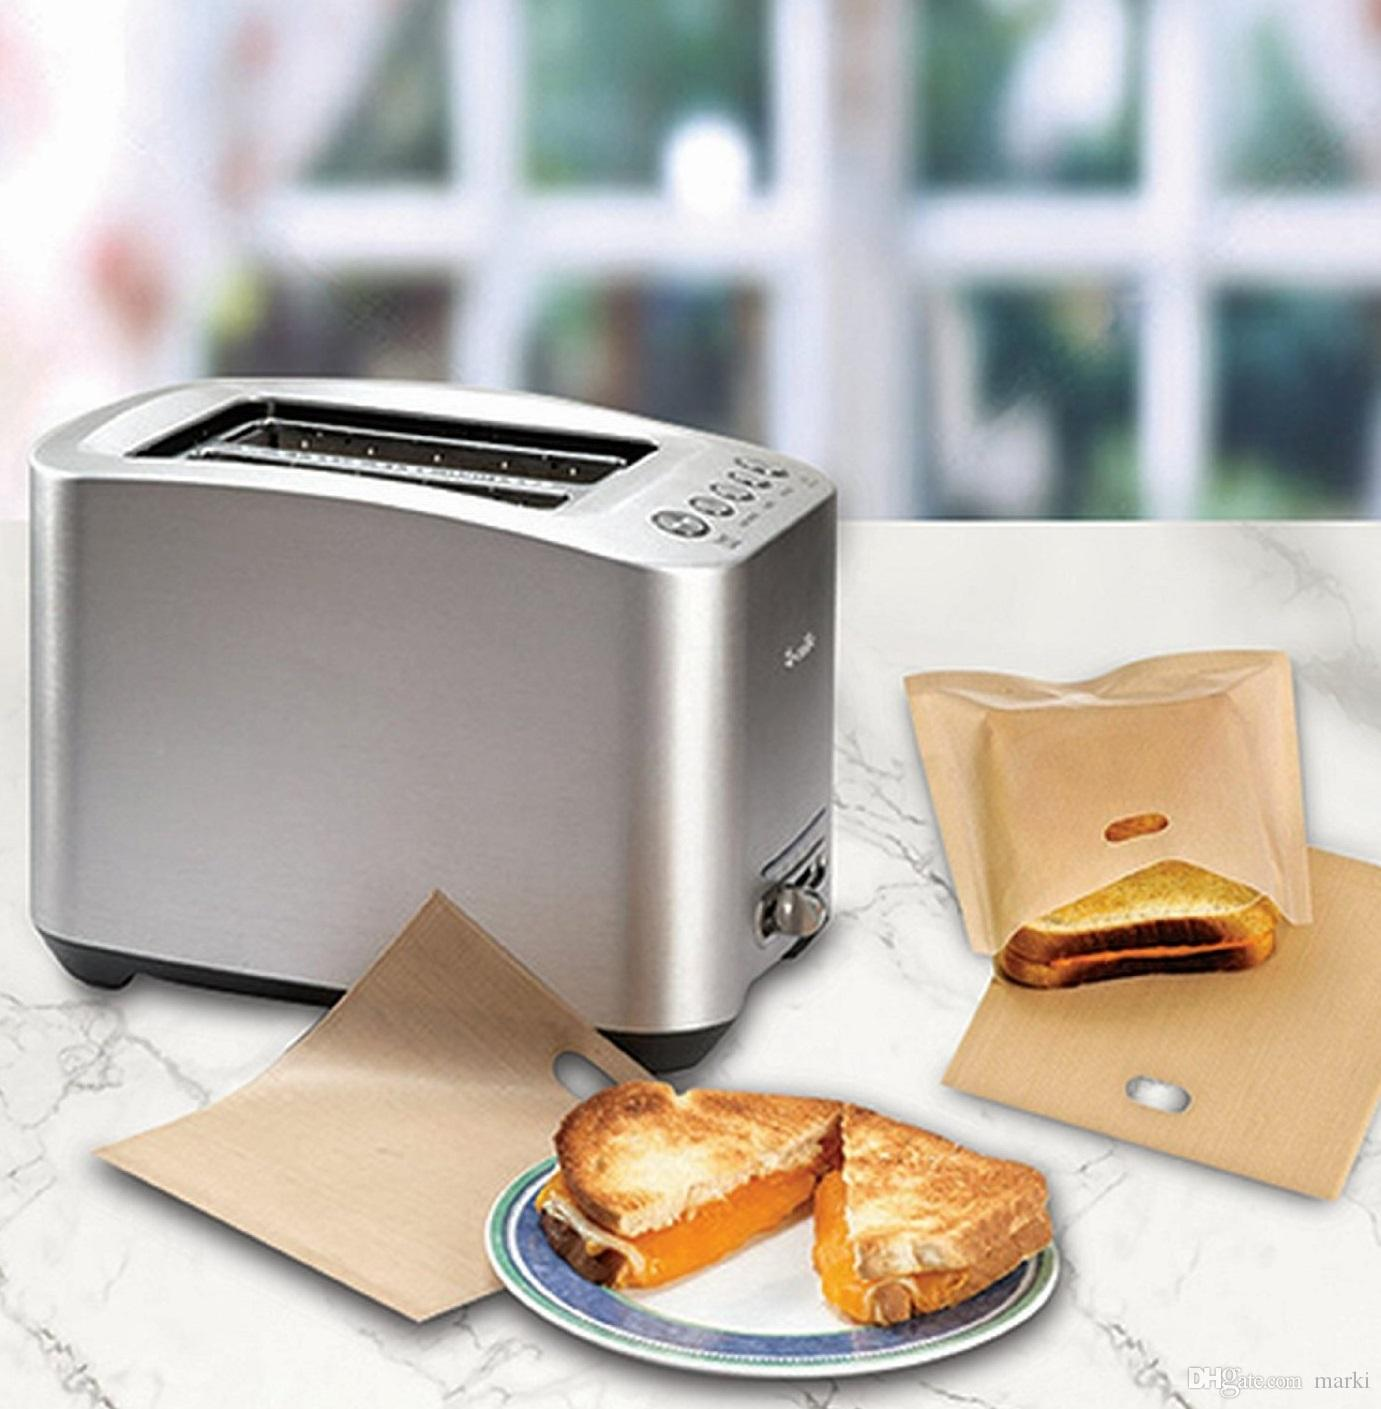 16*16.5CM Reusable Toaster Bags Safe Non Toxic BBC Microwave Oven Bag Not Sticky Toast Toastabags Make A Perfect Toasted Sandwich wn080